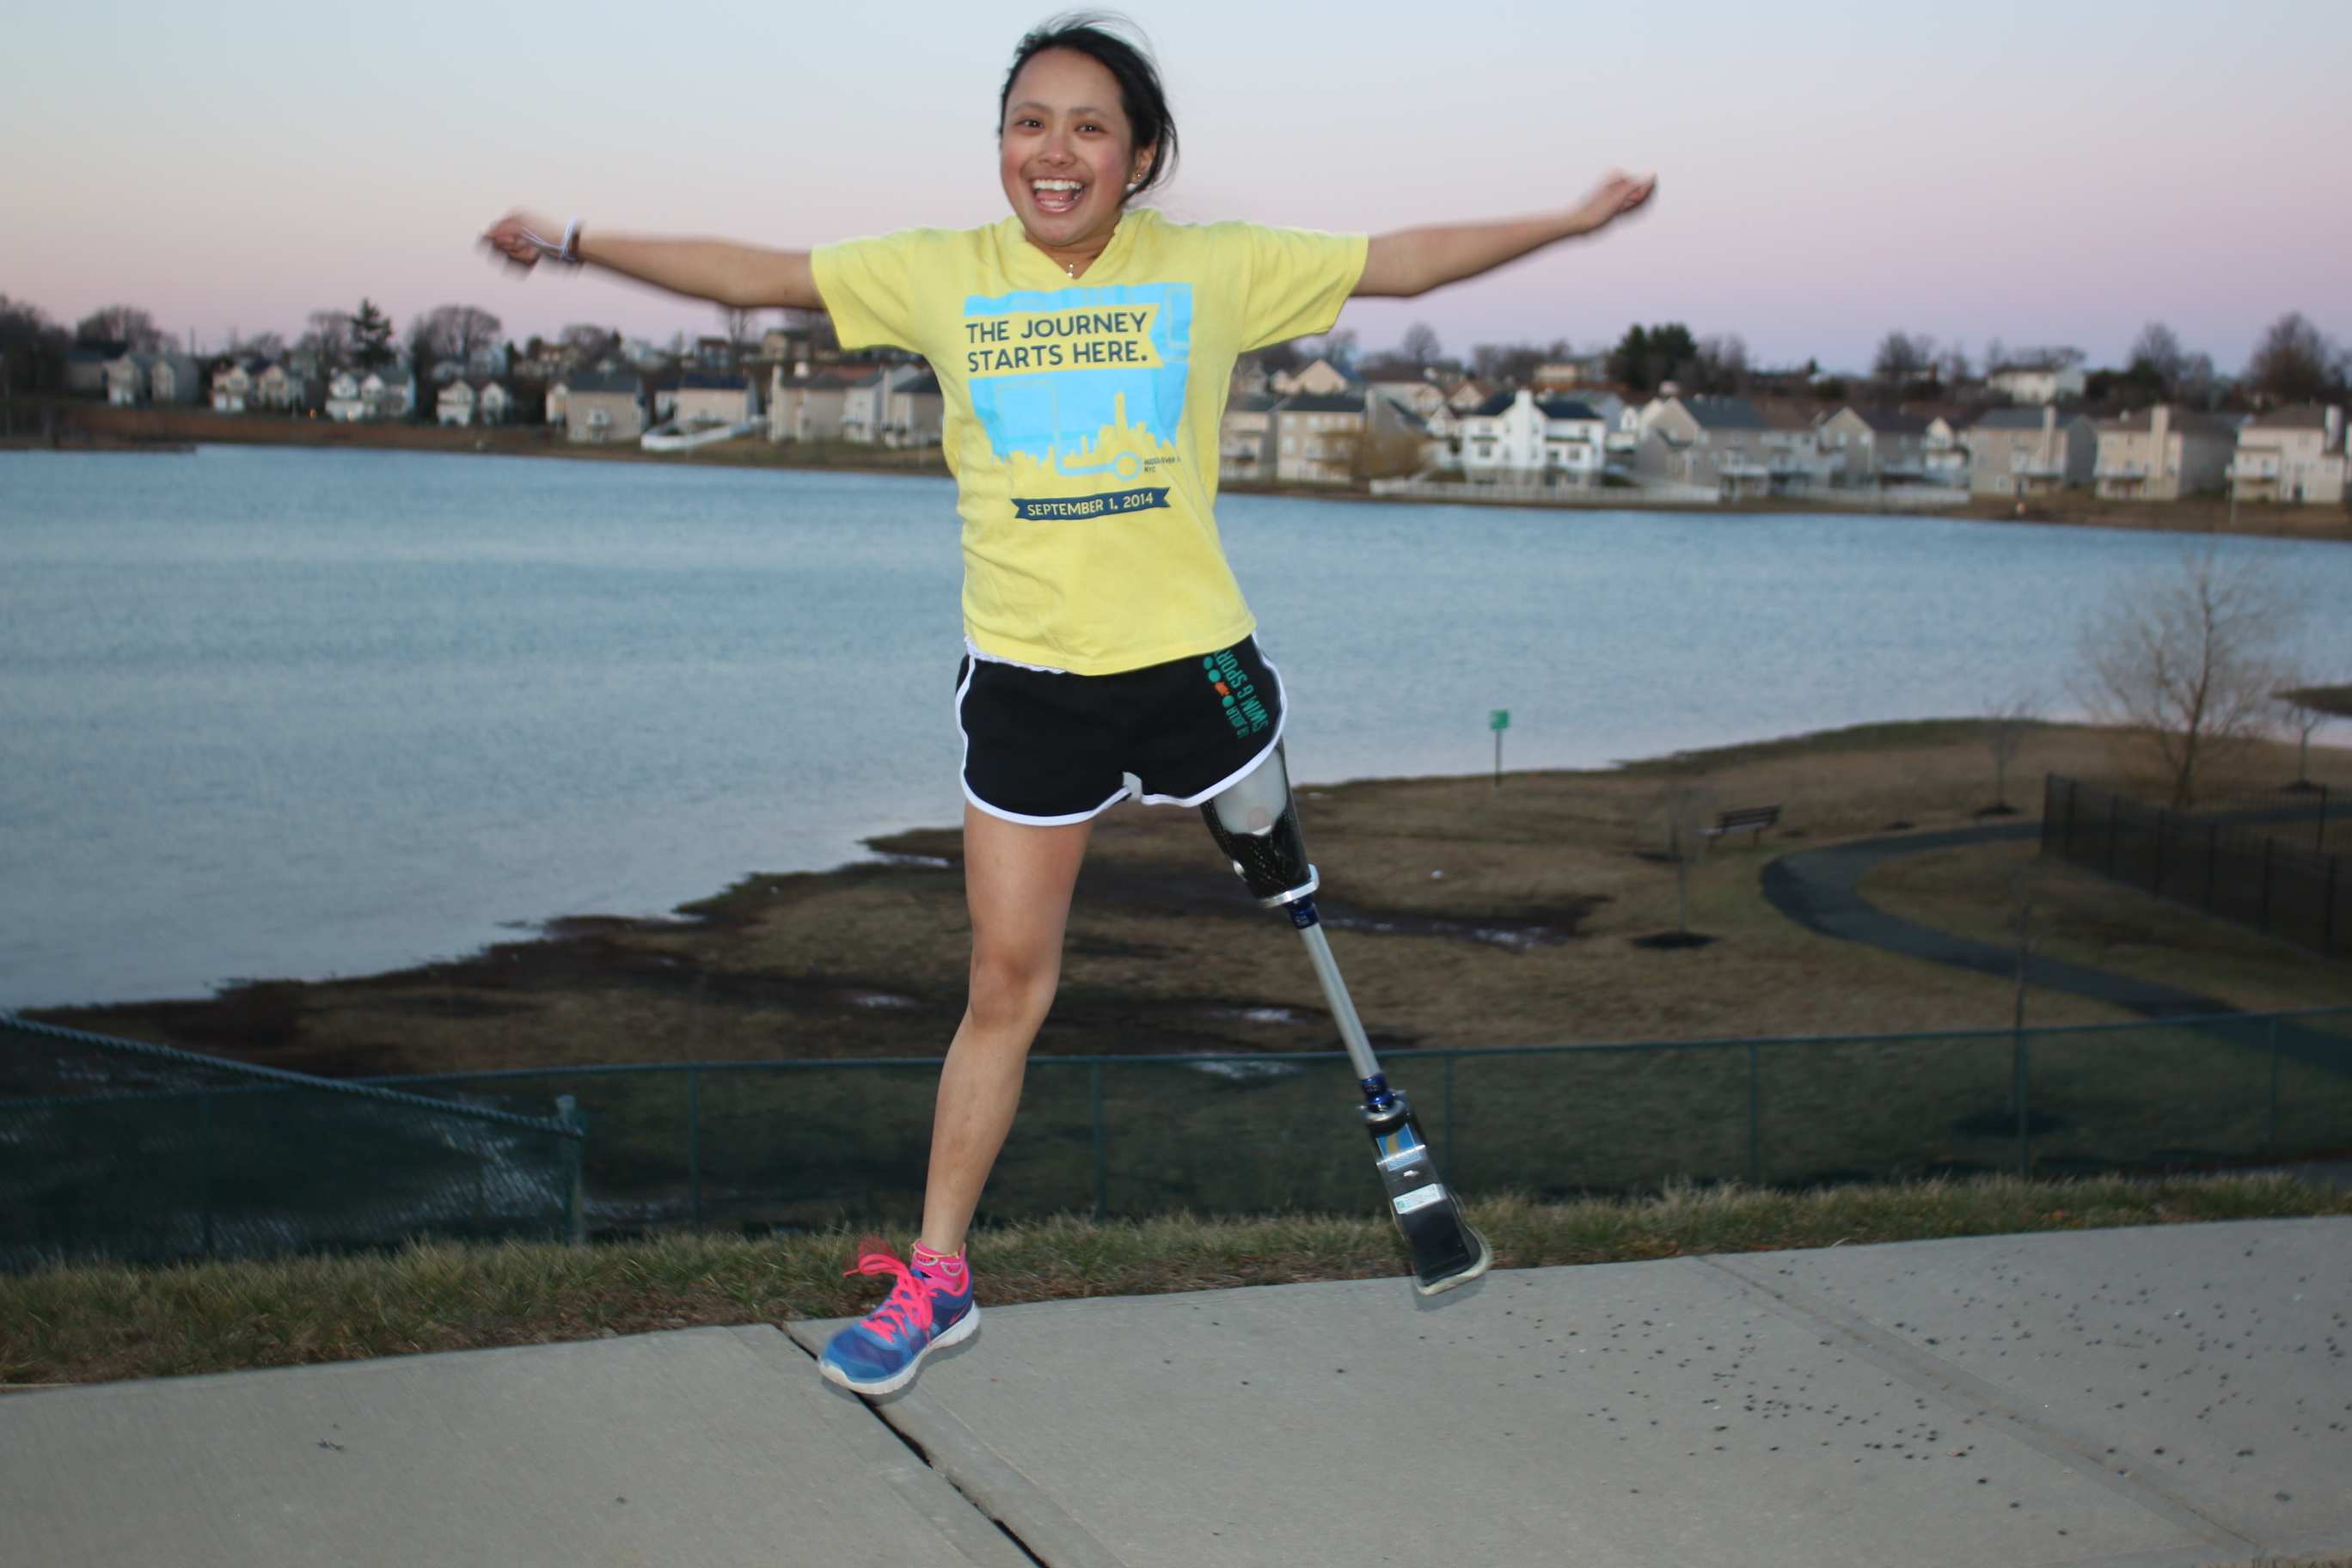 Kaela Cruz, osteoscarcoma survivor and Alex's Lemonade Stand Hero Ambassador